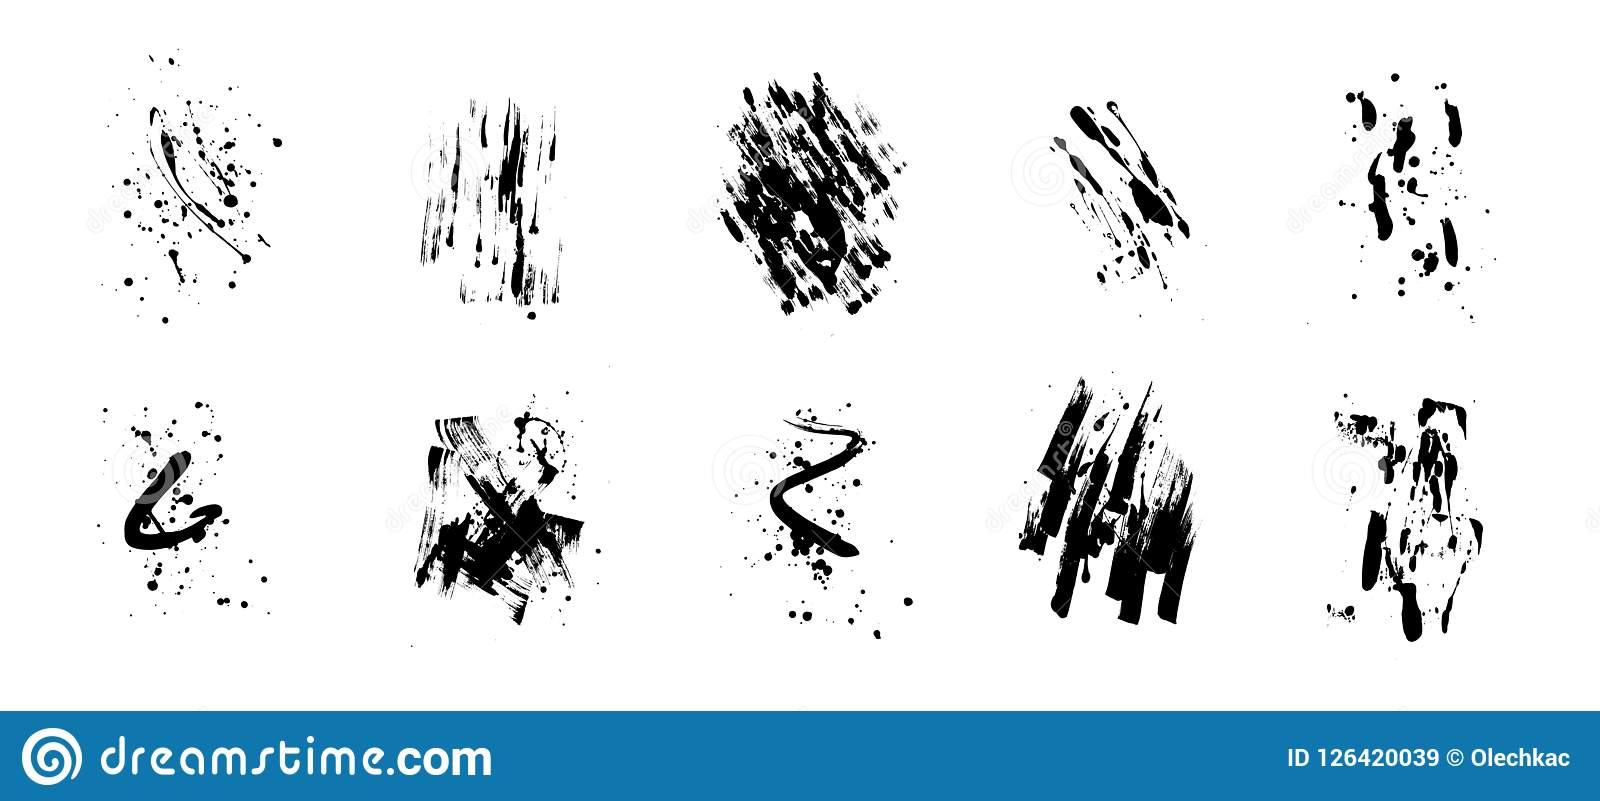 Set of artistic black grunge backgrounds. Vector texture. Dirty artistic design element. Brush stroke, splatter.